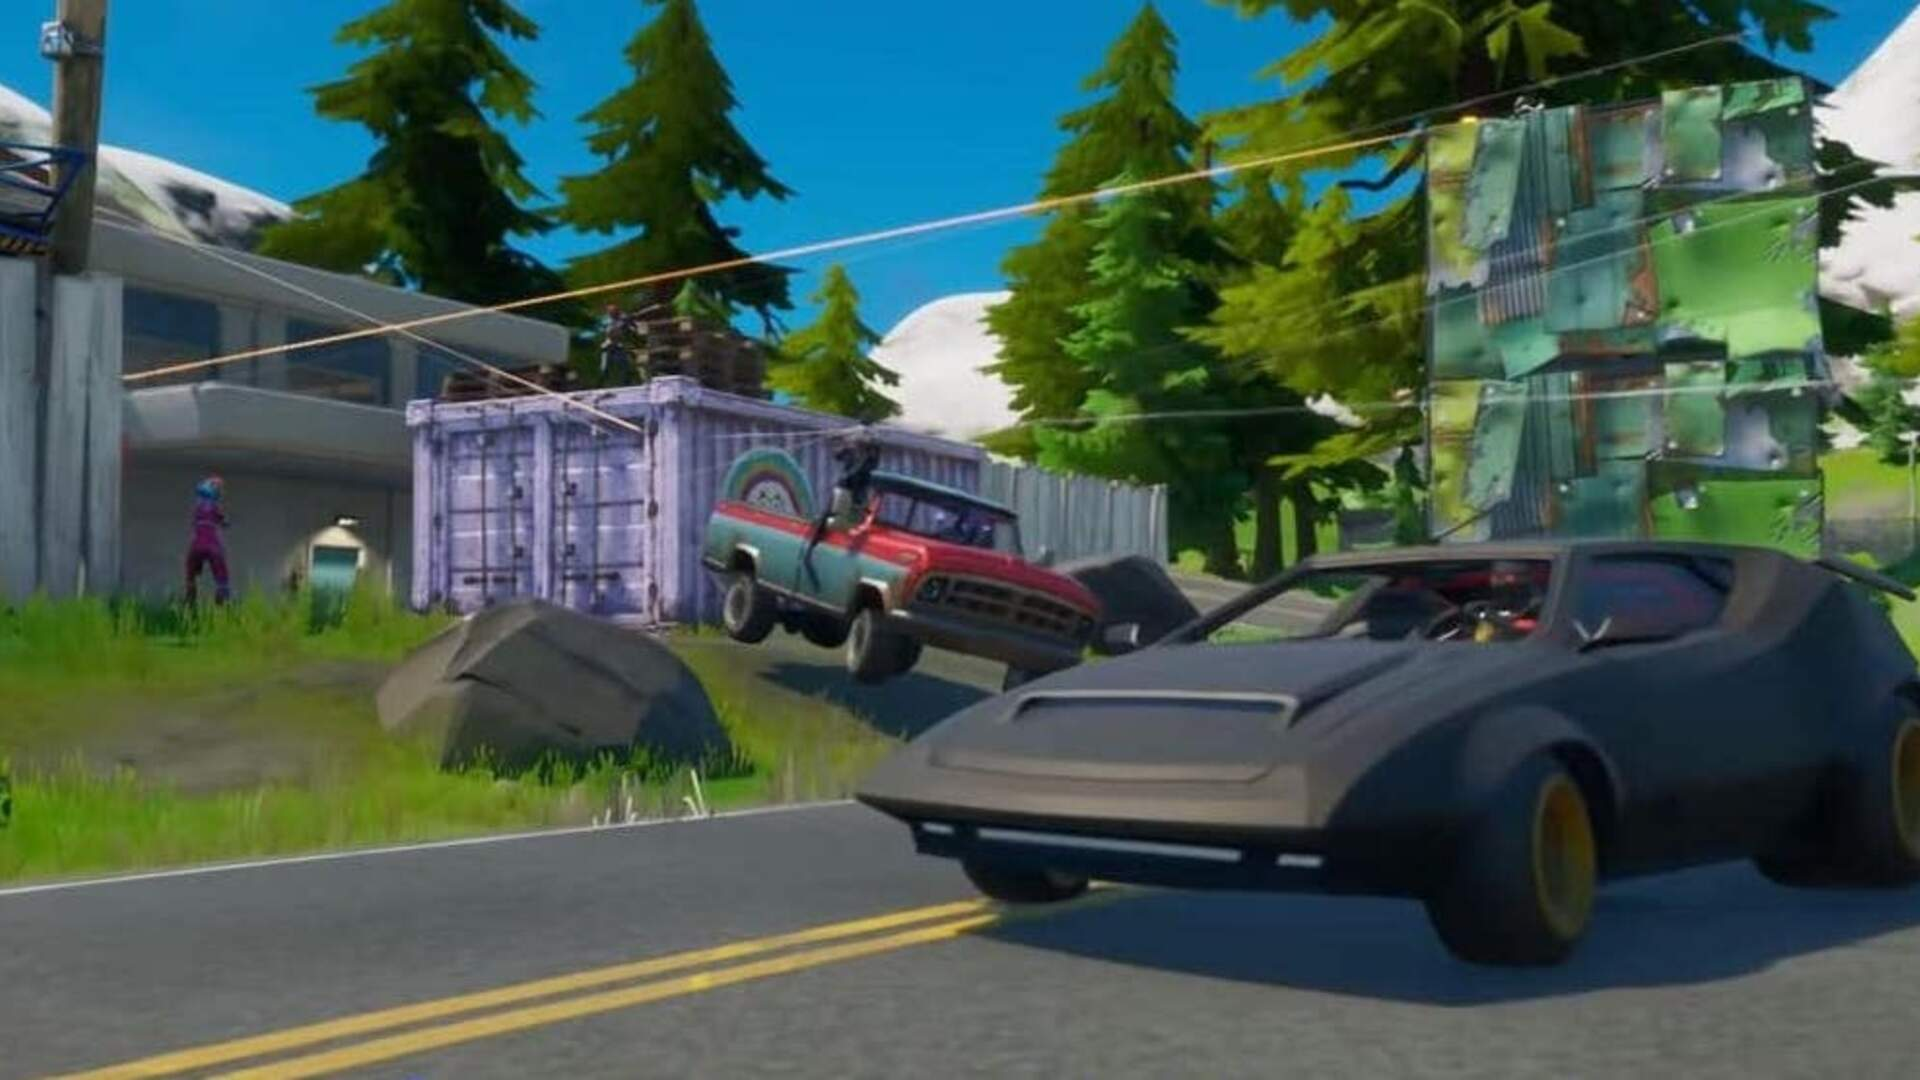 Fortnite's Cars Update is Still a Few Weeks Away